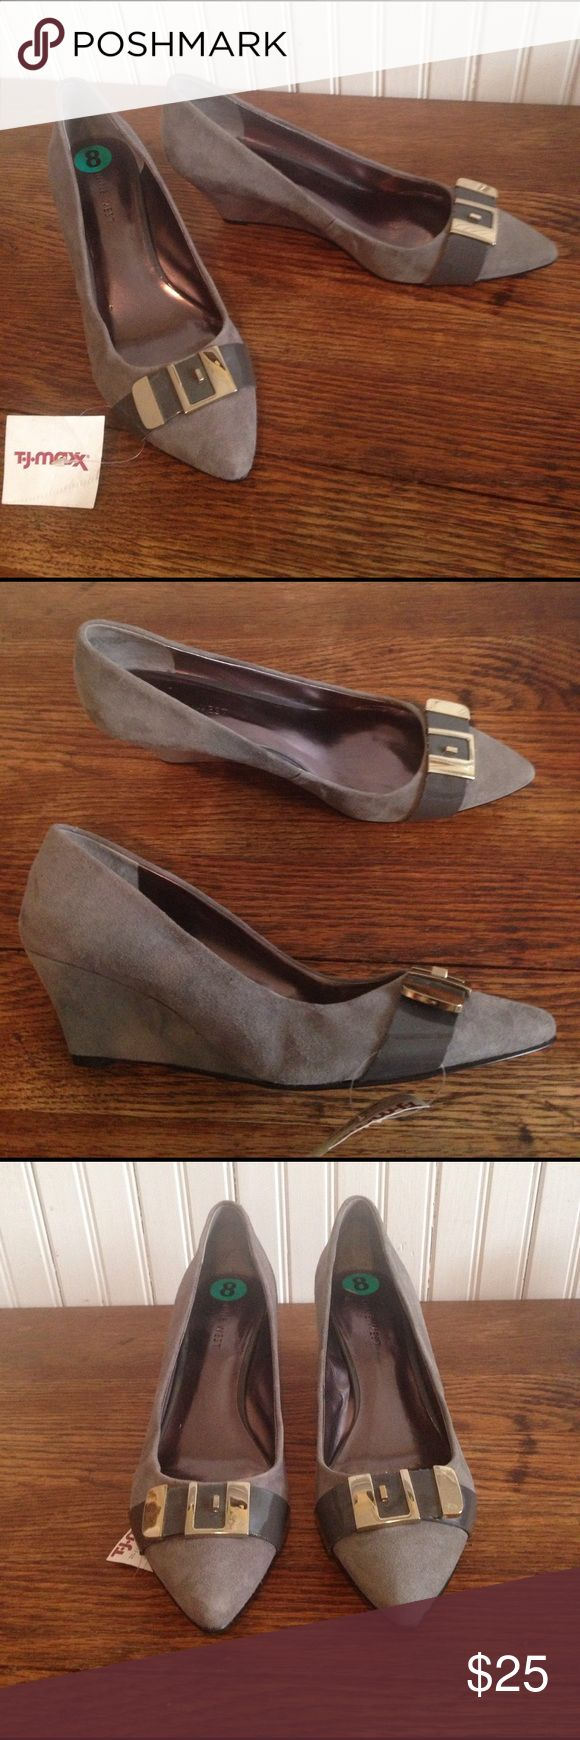 """NWT Nine West gray wedge heels size 8 NWT Nine West gray wedge heels size 8, leather and man made uppers , 2.5"""" wedge heels silver tone hard ware, New with tags but no box, great condition Nine West Shoes Wedges"""